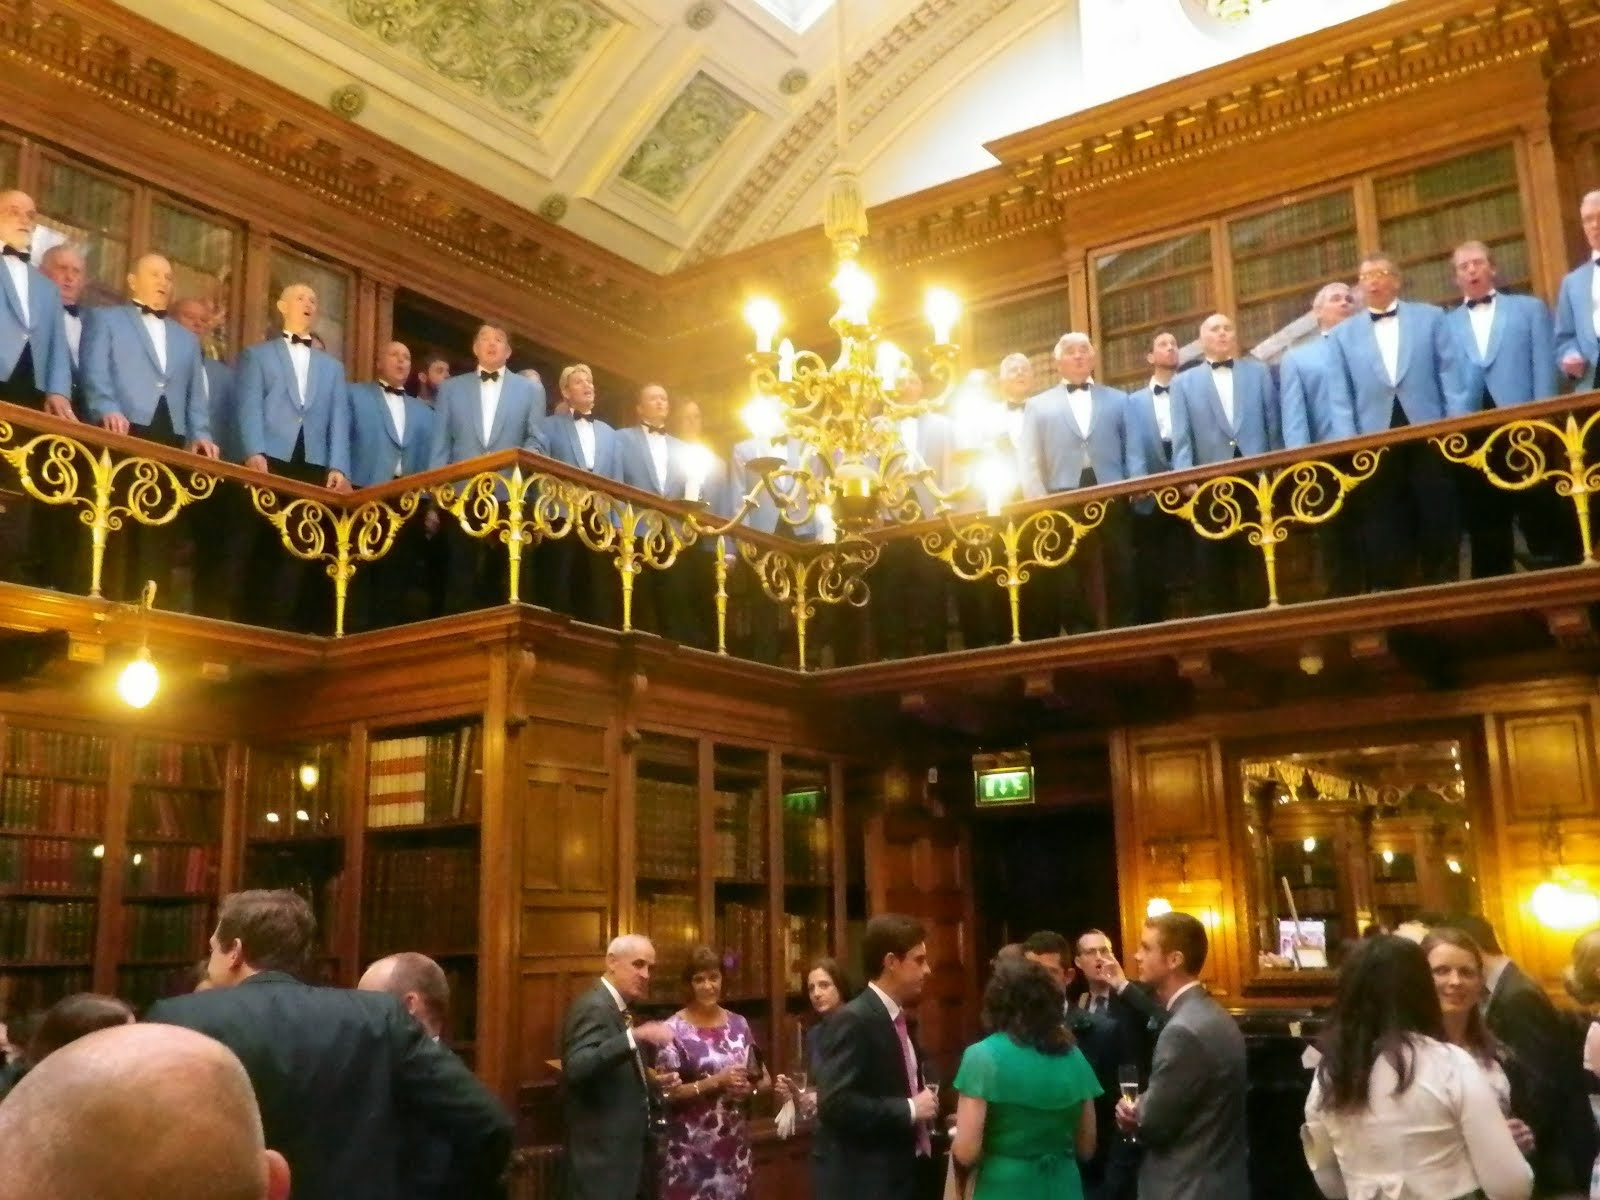 The Chorus at the Royal College of Physicians, Edinburgh